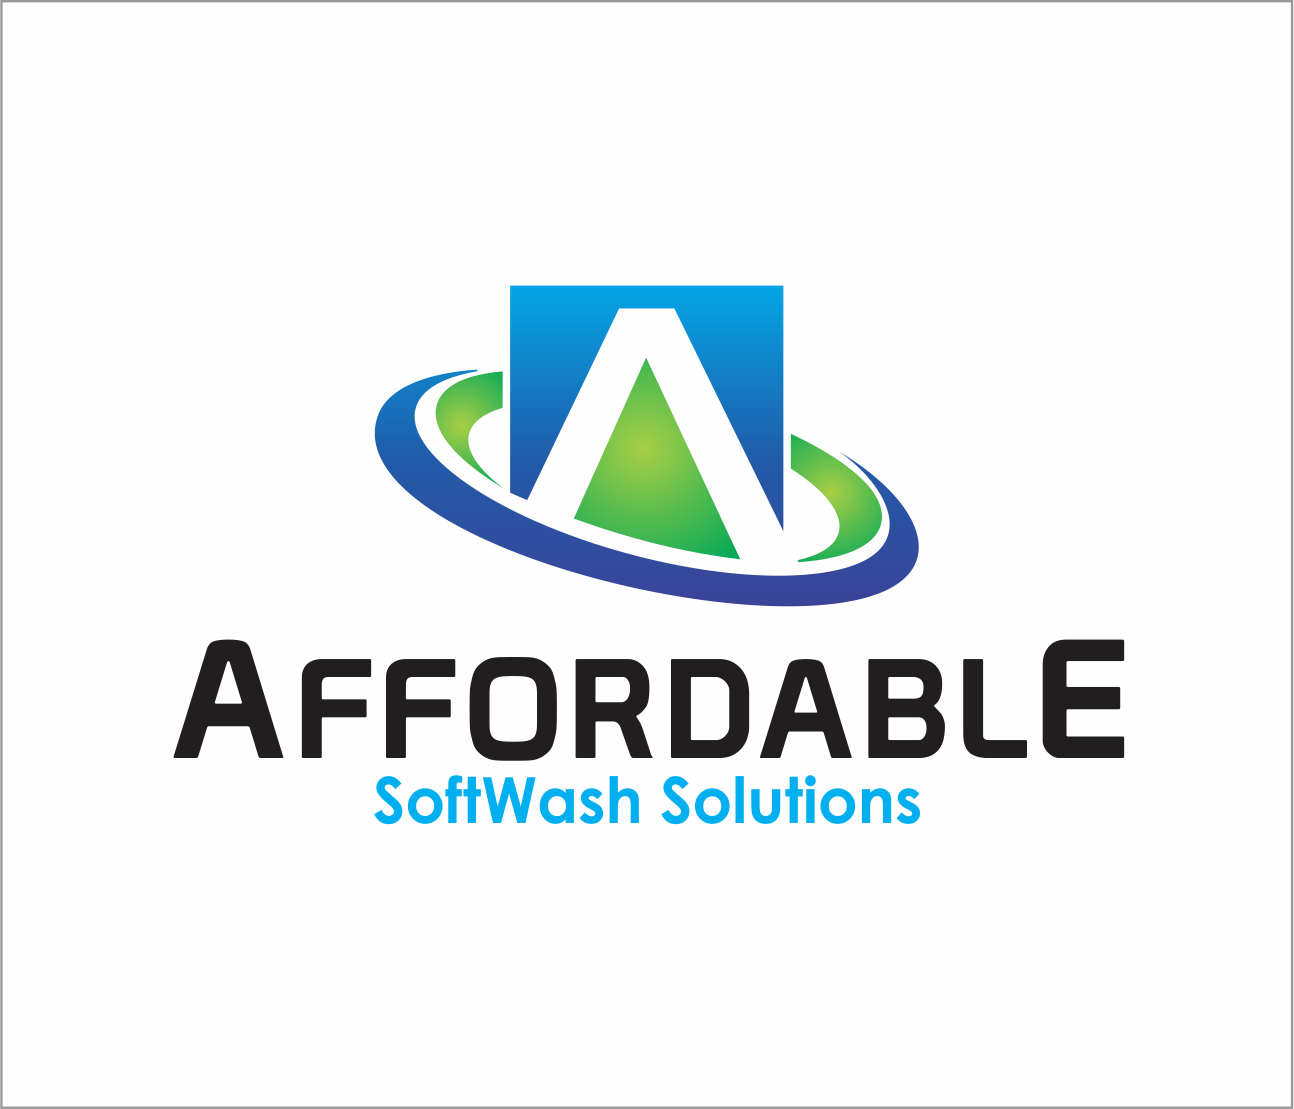 Logo Design by Armada Jamaluddin - Entry No. 33 in the Logo Design Contest Imaginative Logo Design for Affordable SoftWash Solutions.